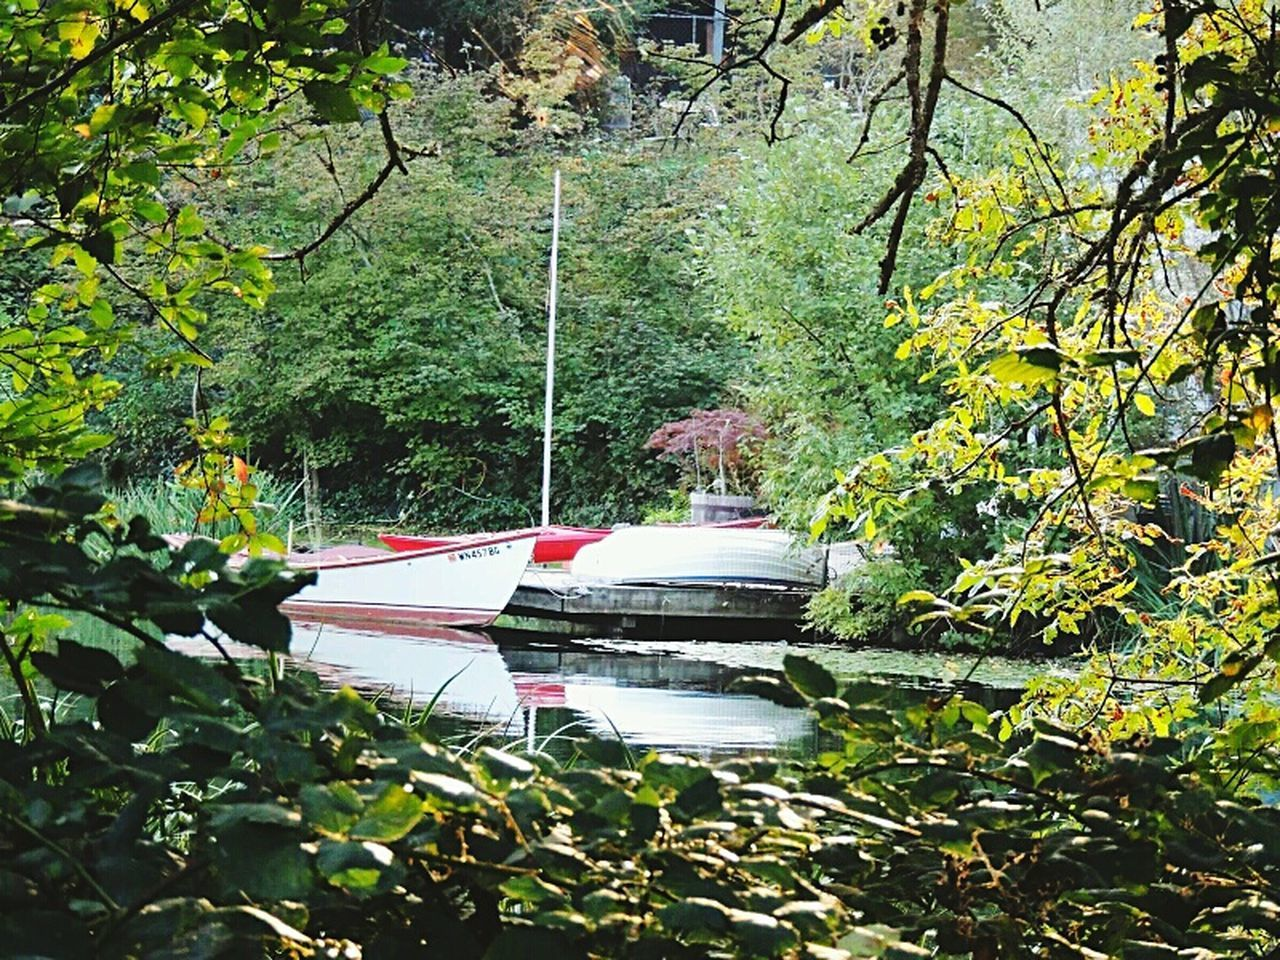 nautical vessel, growth, transportation, nature, boat, tree, mode of transport, leaf, water, lake, plant, moored, day, no people, outdoors, rowboat, branch, beauty in nature, tranquility